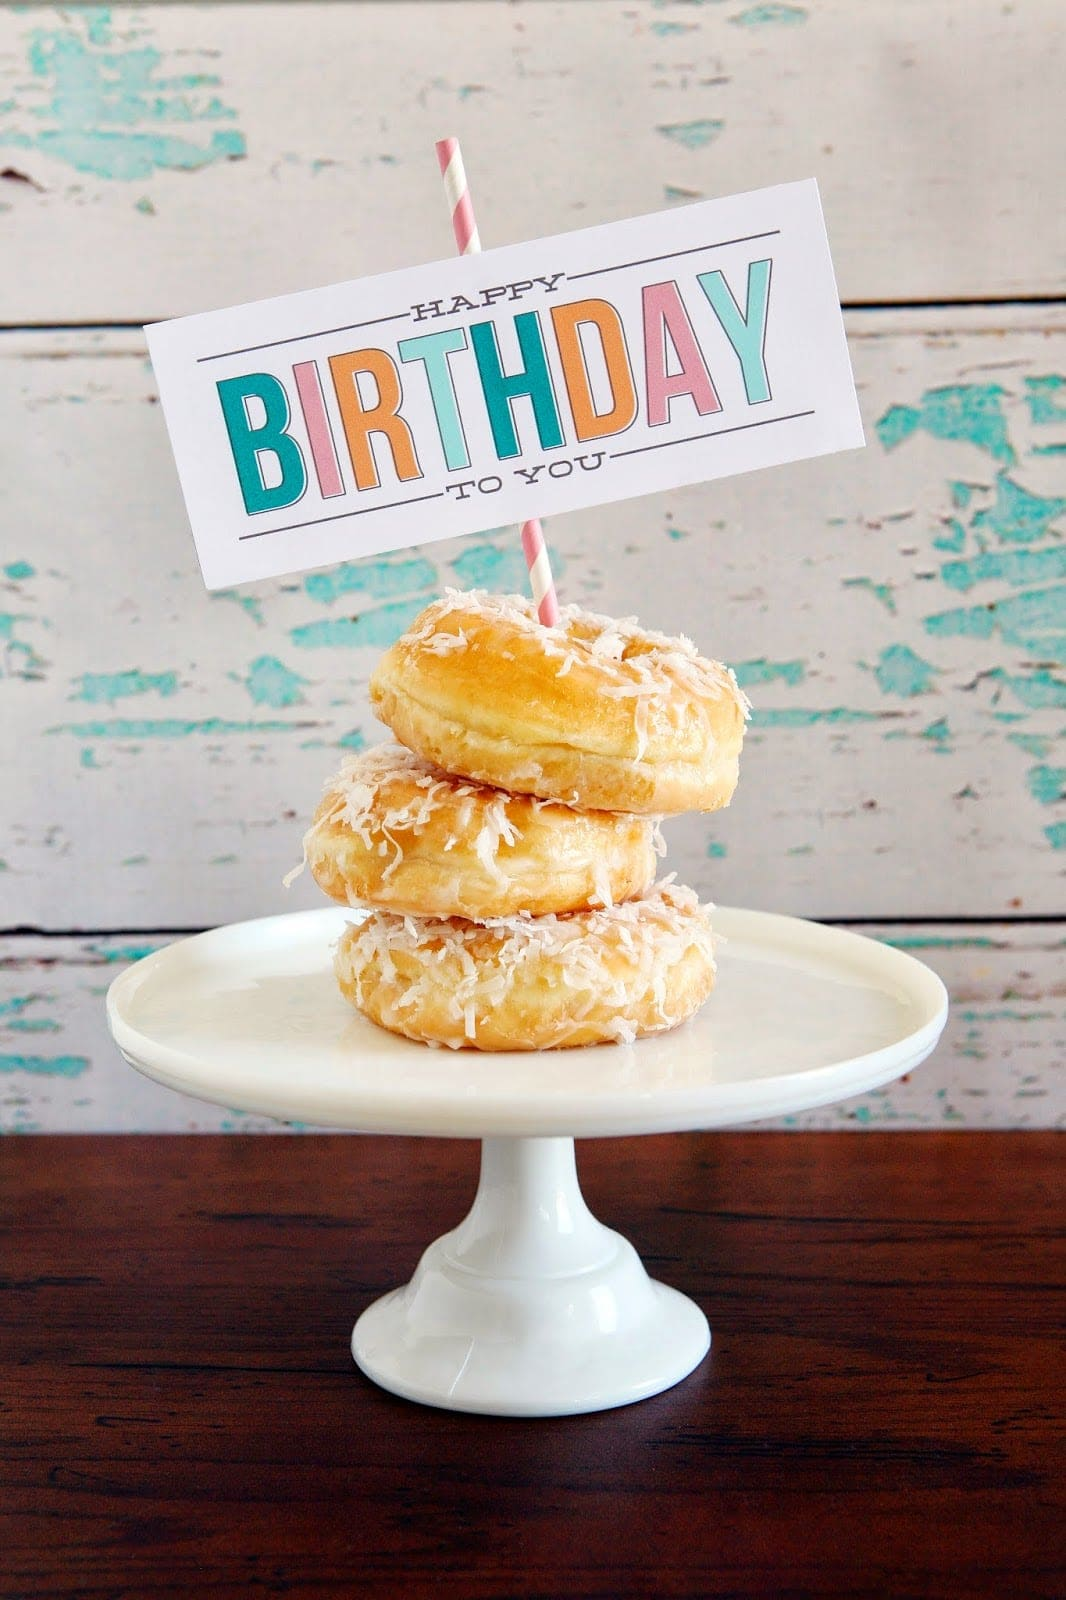 Donuts on a cake stand with a happy birthday sign